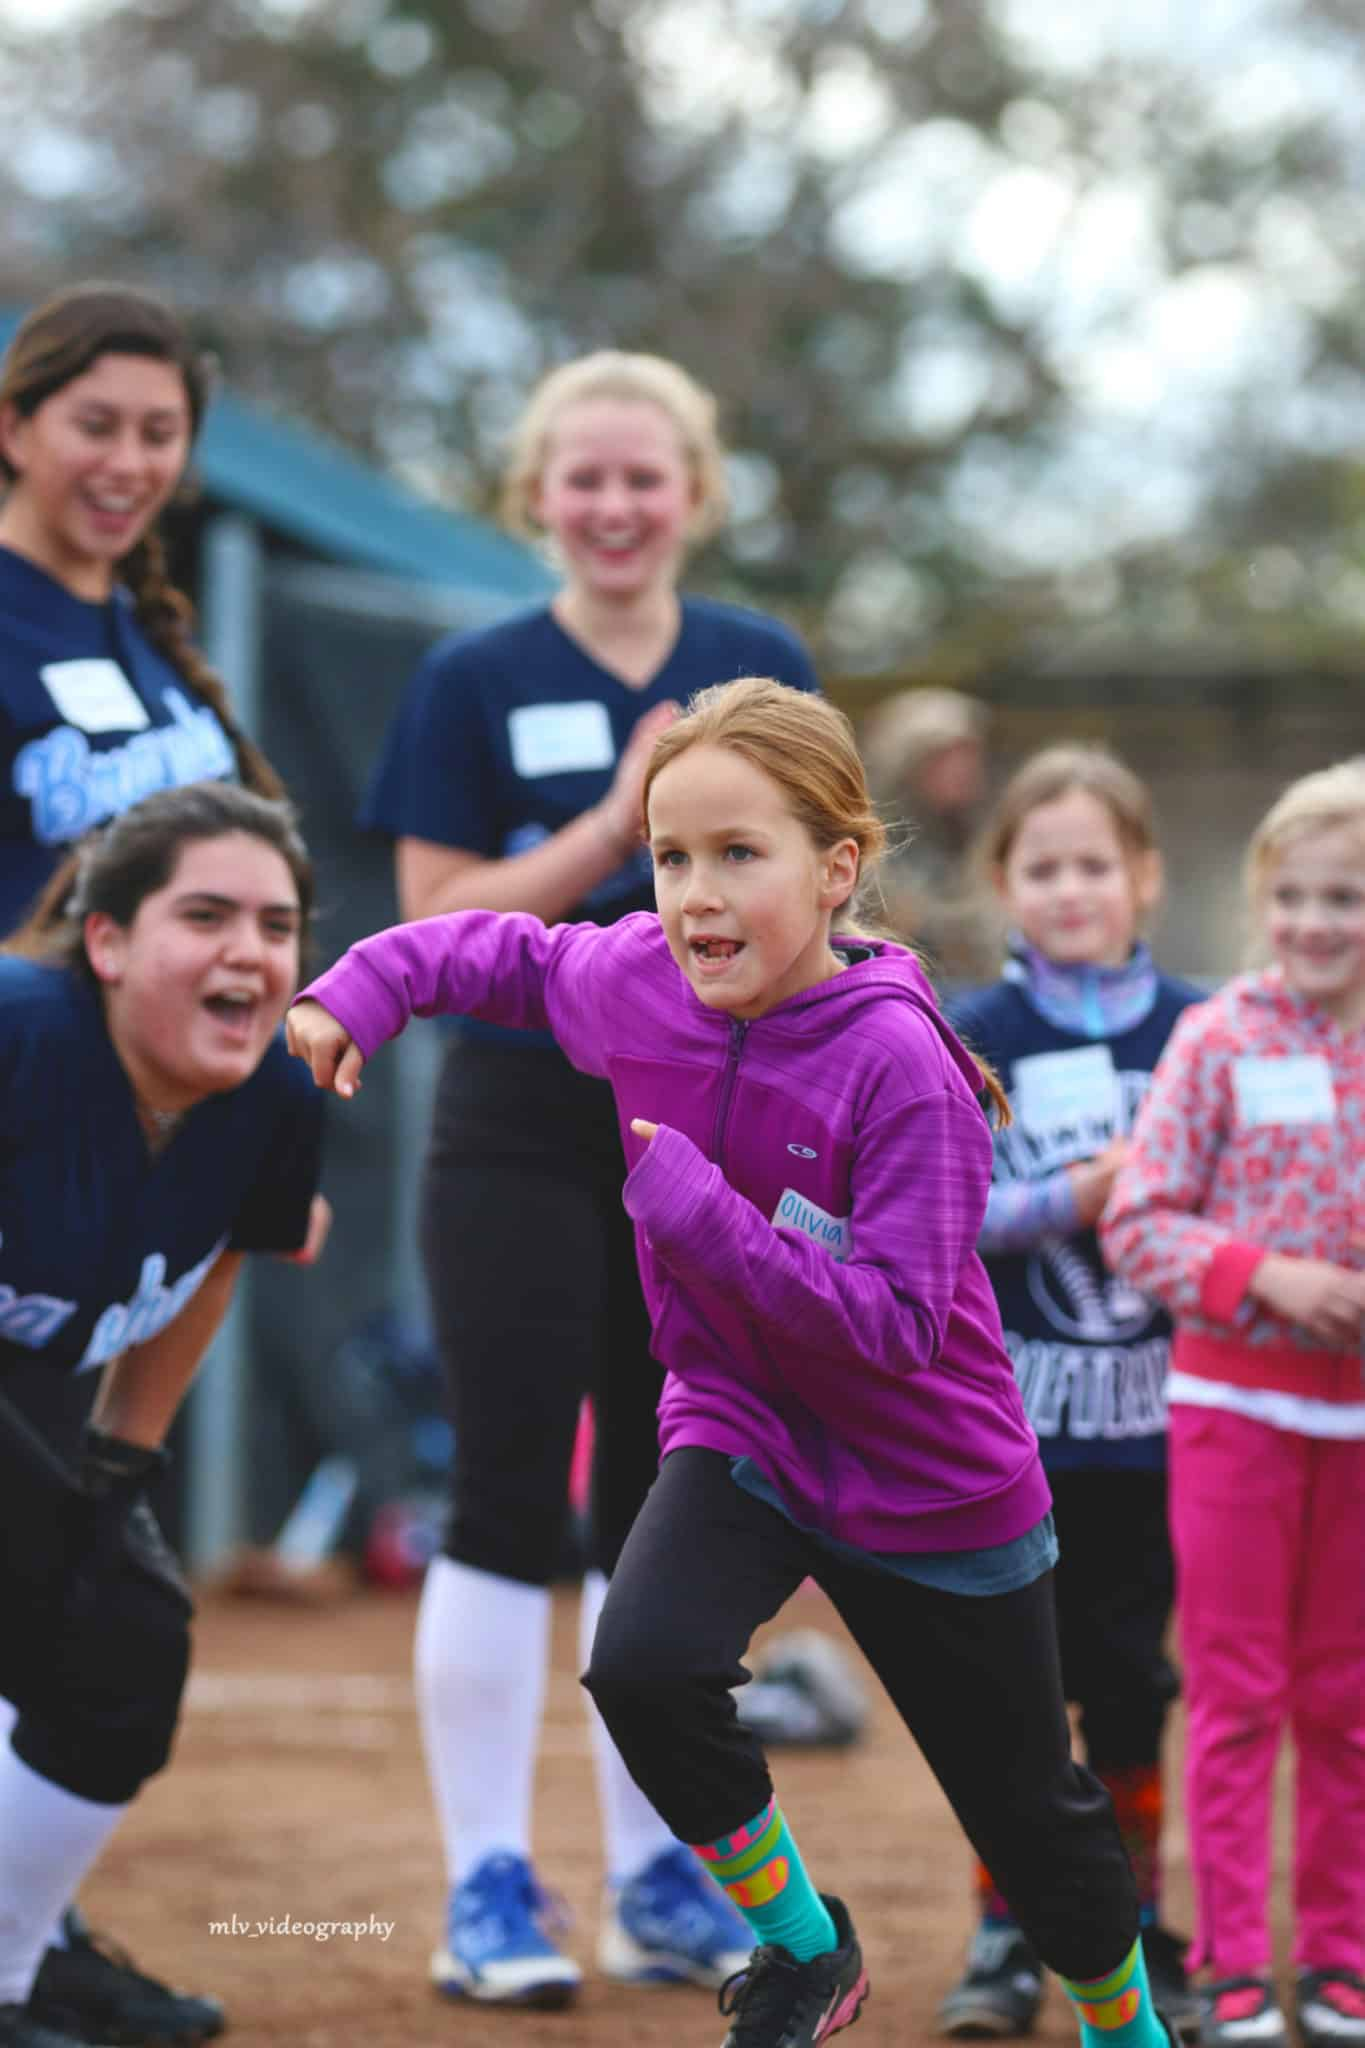 Action shot of a softball player running the bases with supportive clinic coaches in background